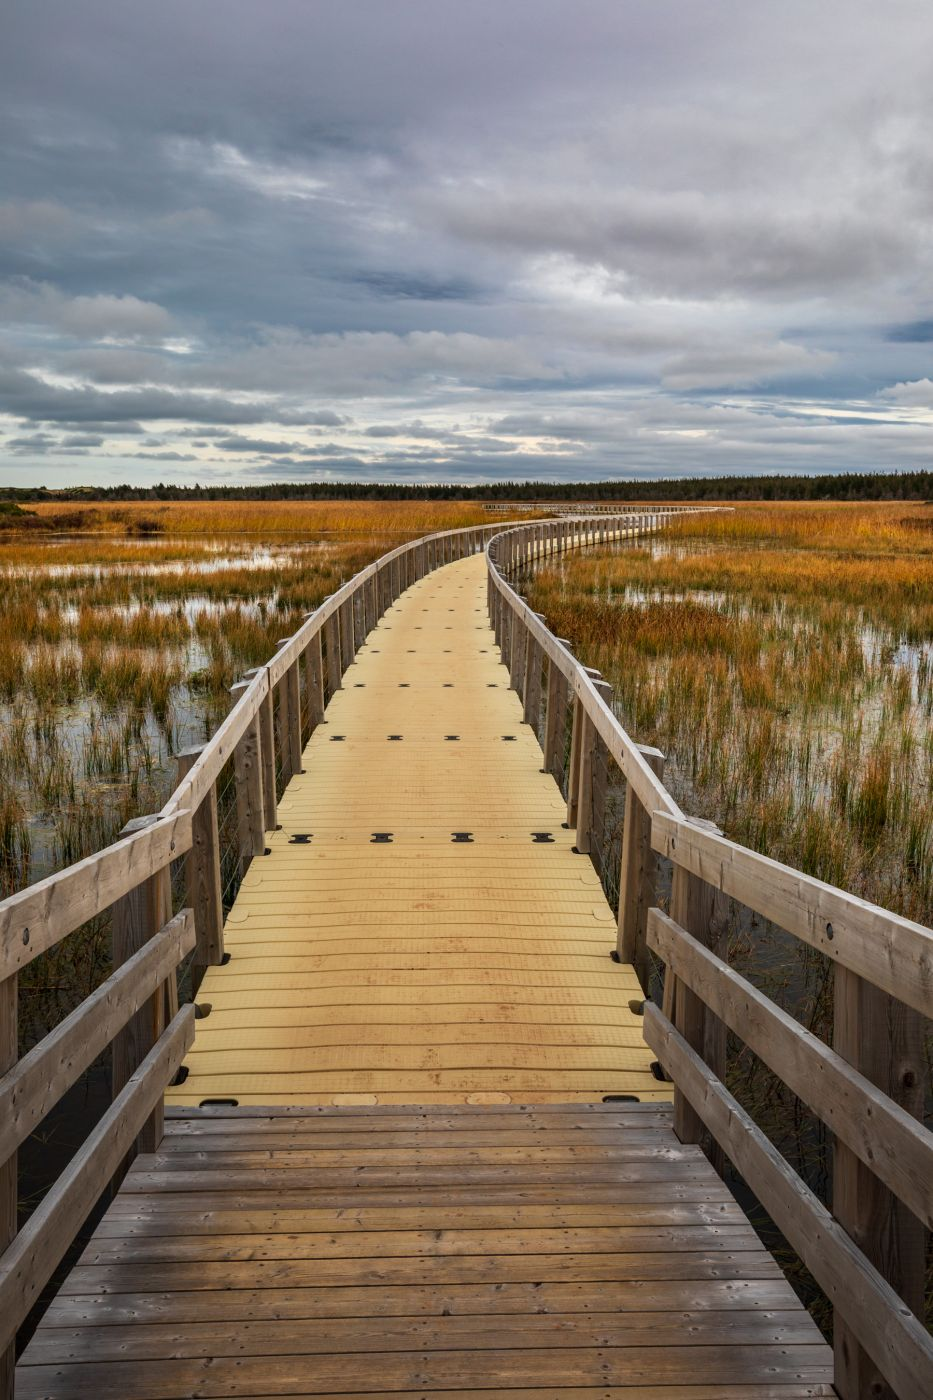 National Park Greenwich Floating Bridge Prince Edward Island, Canada